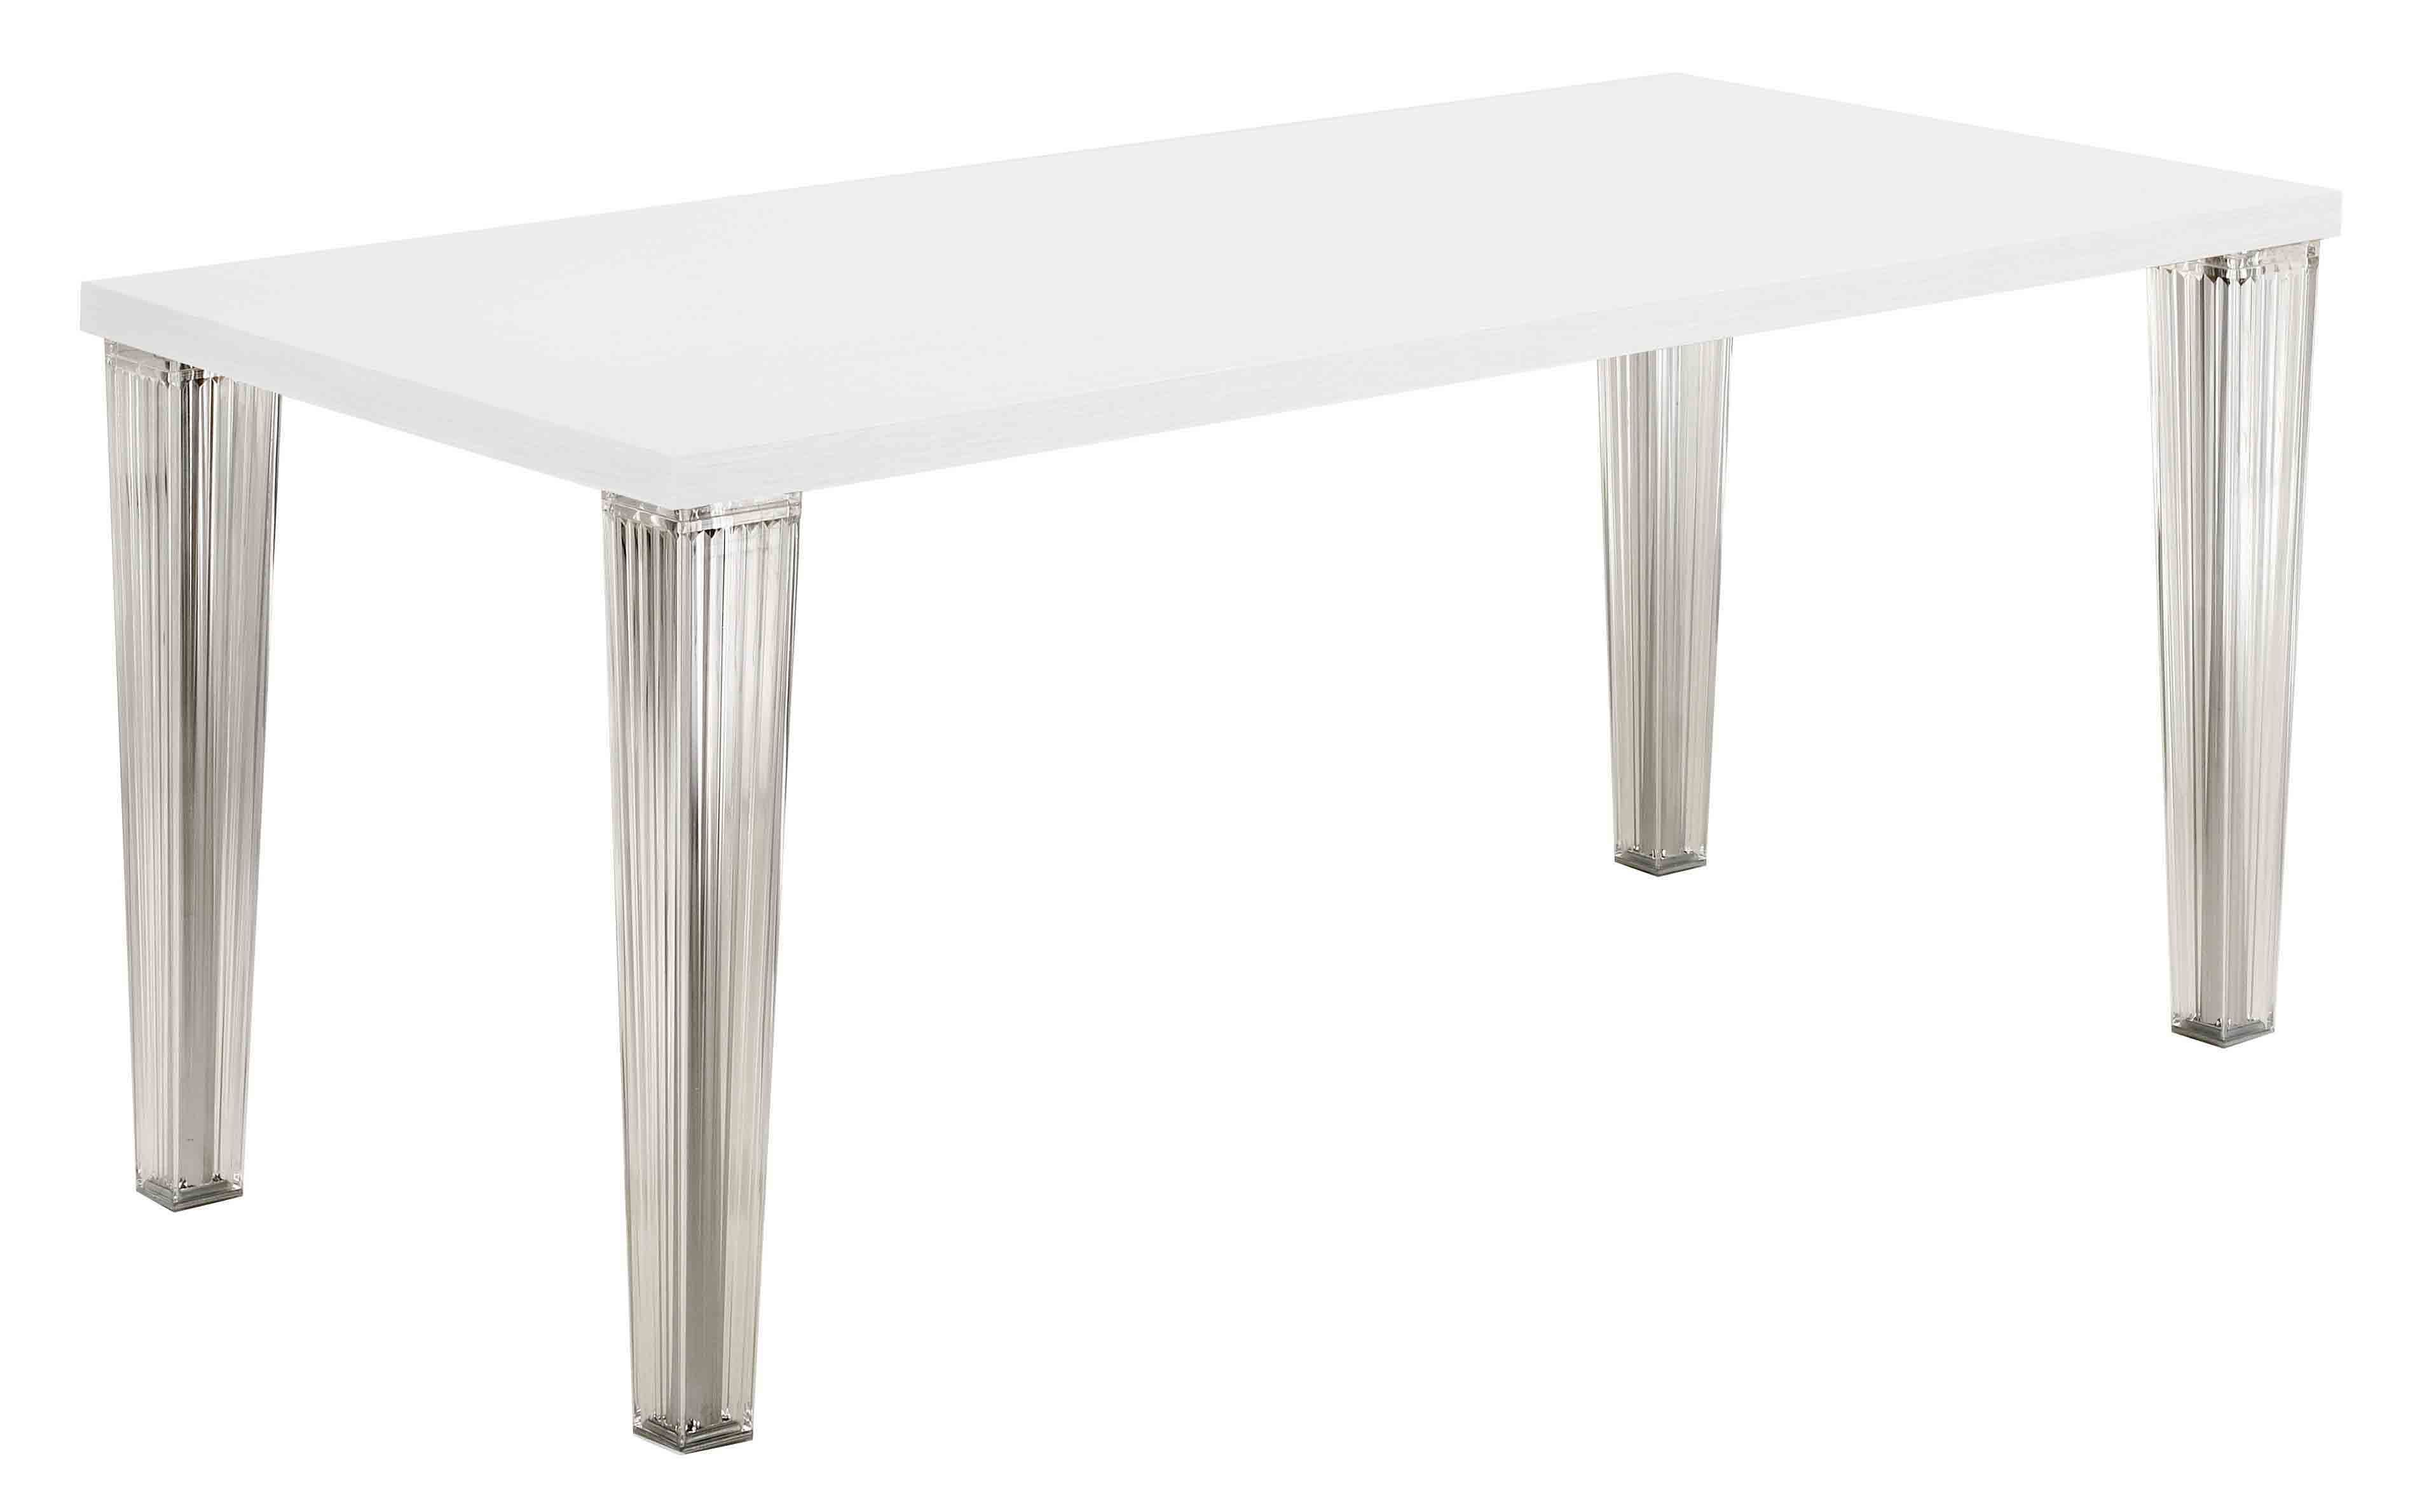 Furniture - Dining Tables - Top Top Table - 160 cm - lacquered table top by Kartell - White - Lacquered polyester, Polycarbonate